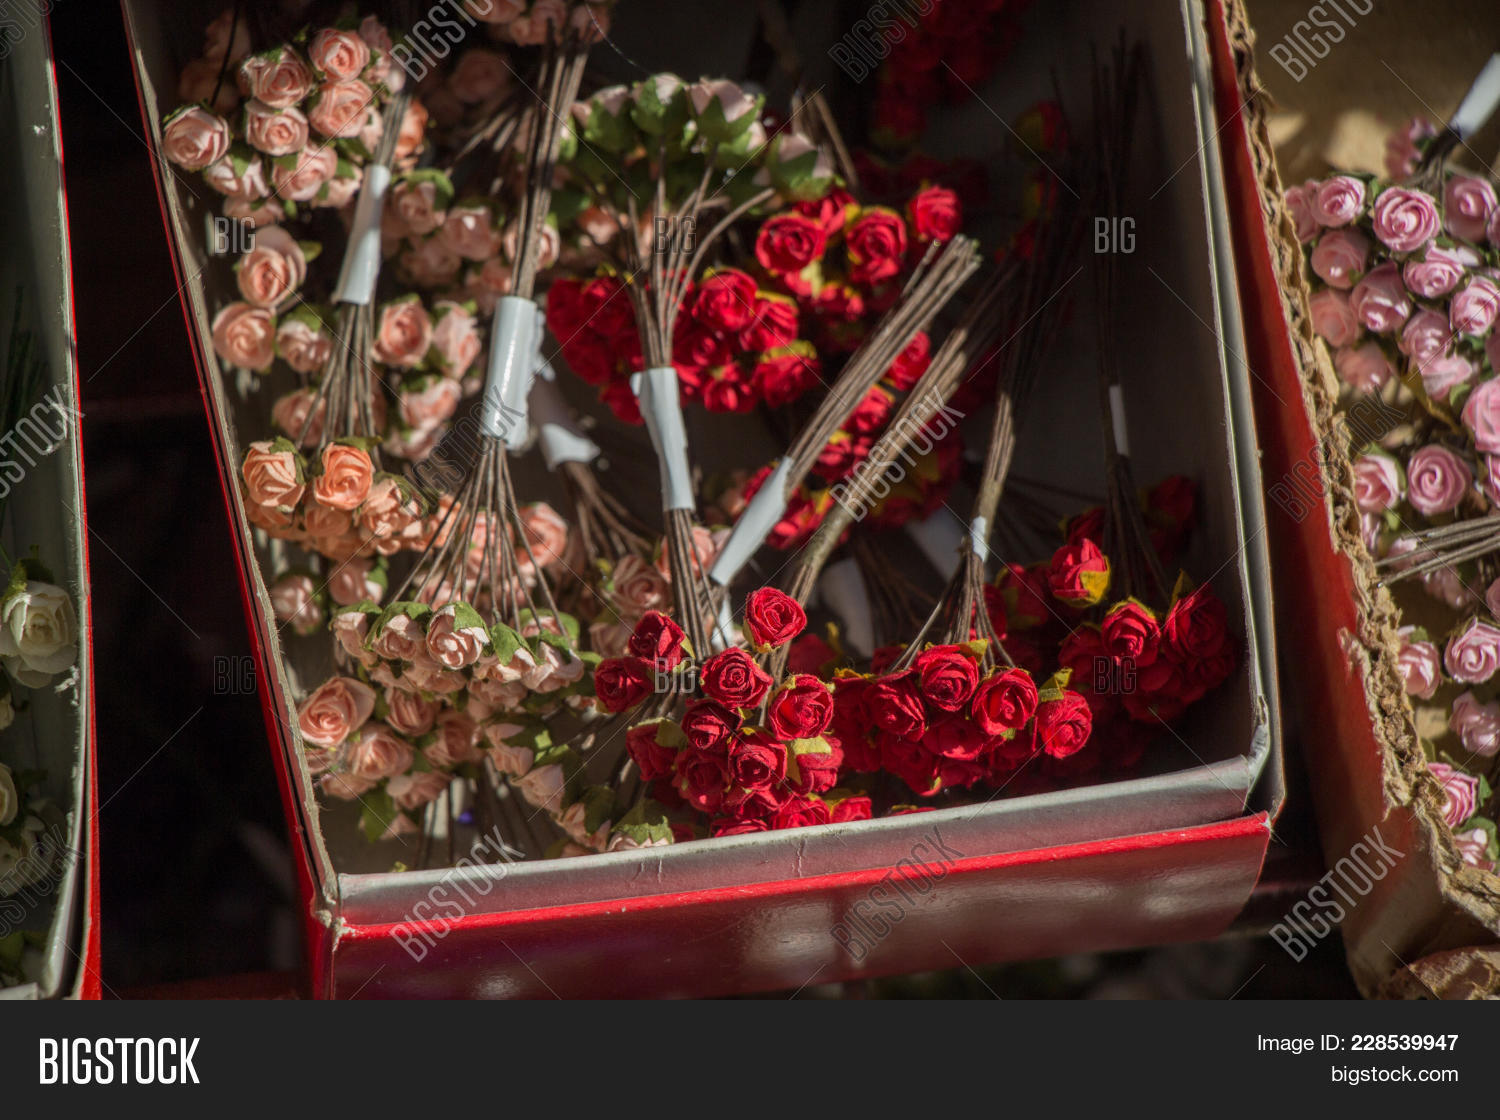 Bouquet,abstract,arrangement,artificial,background,beautiful,bloom,blooming,blossom,botanical,bud,bunch,celebration,colorful,creative,decorative,design,fake,flora,floral,flower,gardening,gift,leaf,love,object,ornament,pattern,petal,plant,plastic,pot,romantic,rose,sad,spring,summer,synthetic,texture,unreal,vase,wallpaper,wedding,wreath